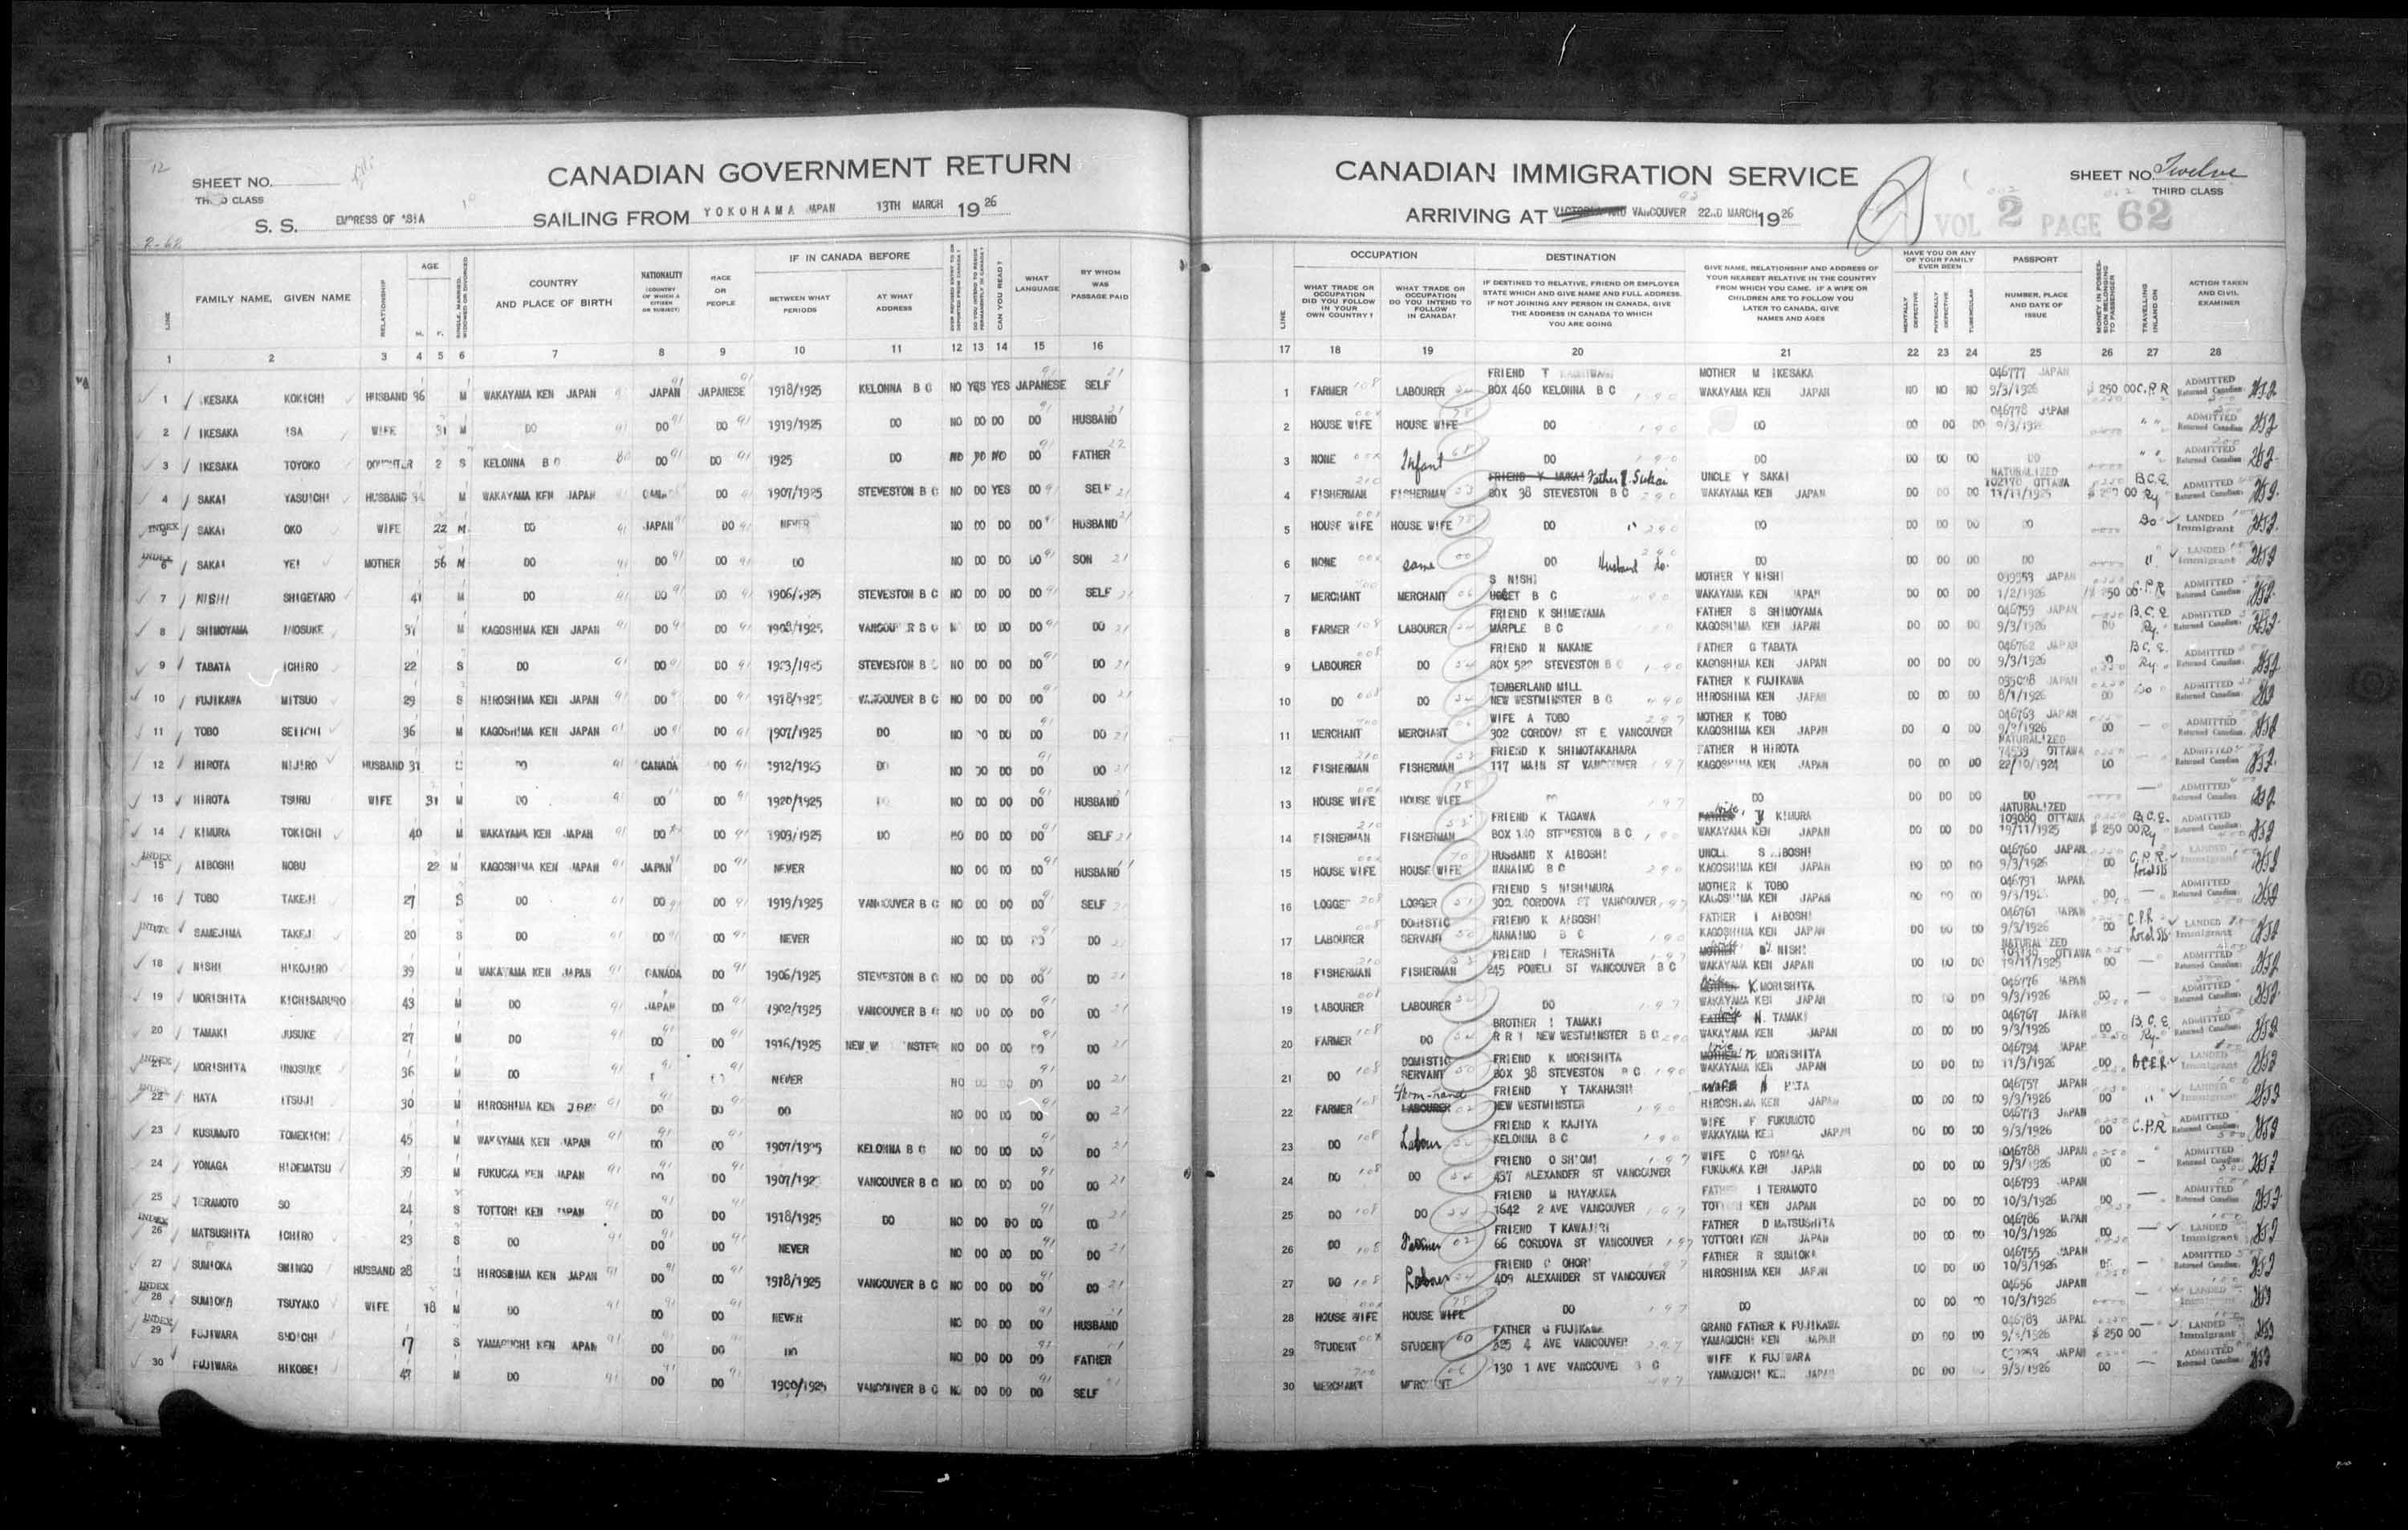 Title: Passenger Lists: Vancouver and Victoria (1925-1935) - Mikan Number: 161347 - Microform: t-14884